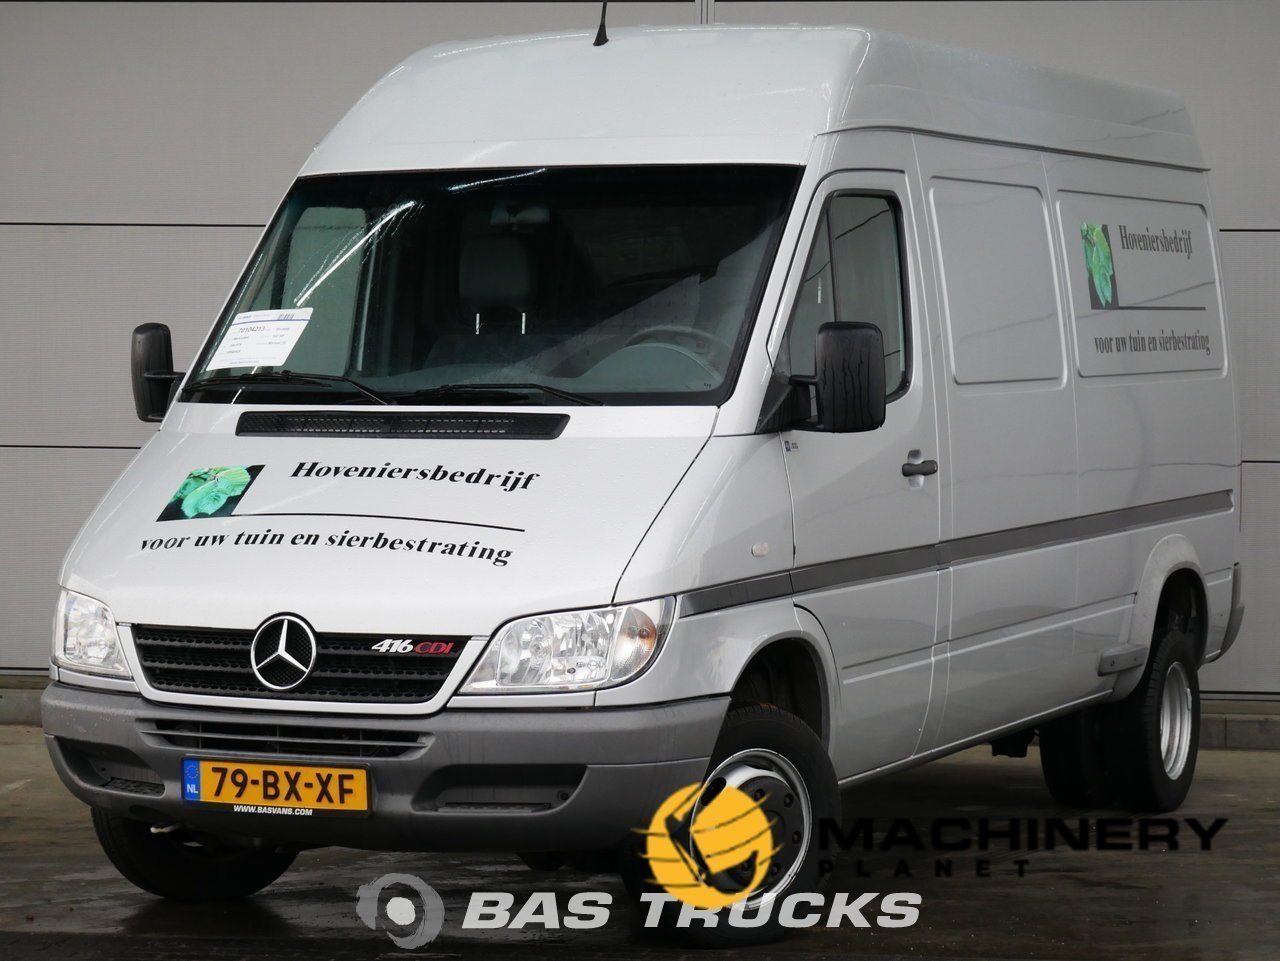 Used-Light-commercial-vehicle-Mercedes-Sprinter-2006_147457_1-1554199532712_5ca333ecadb6c-1.jpg